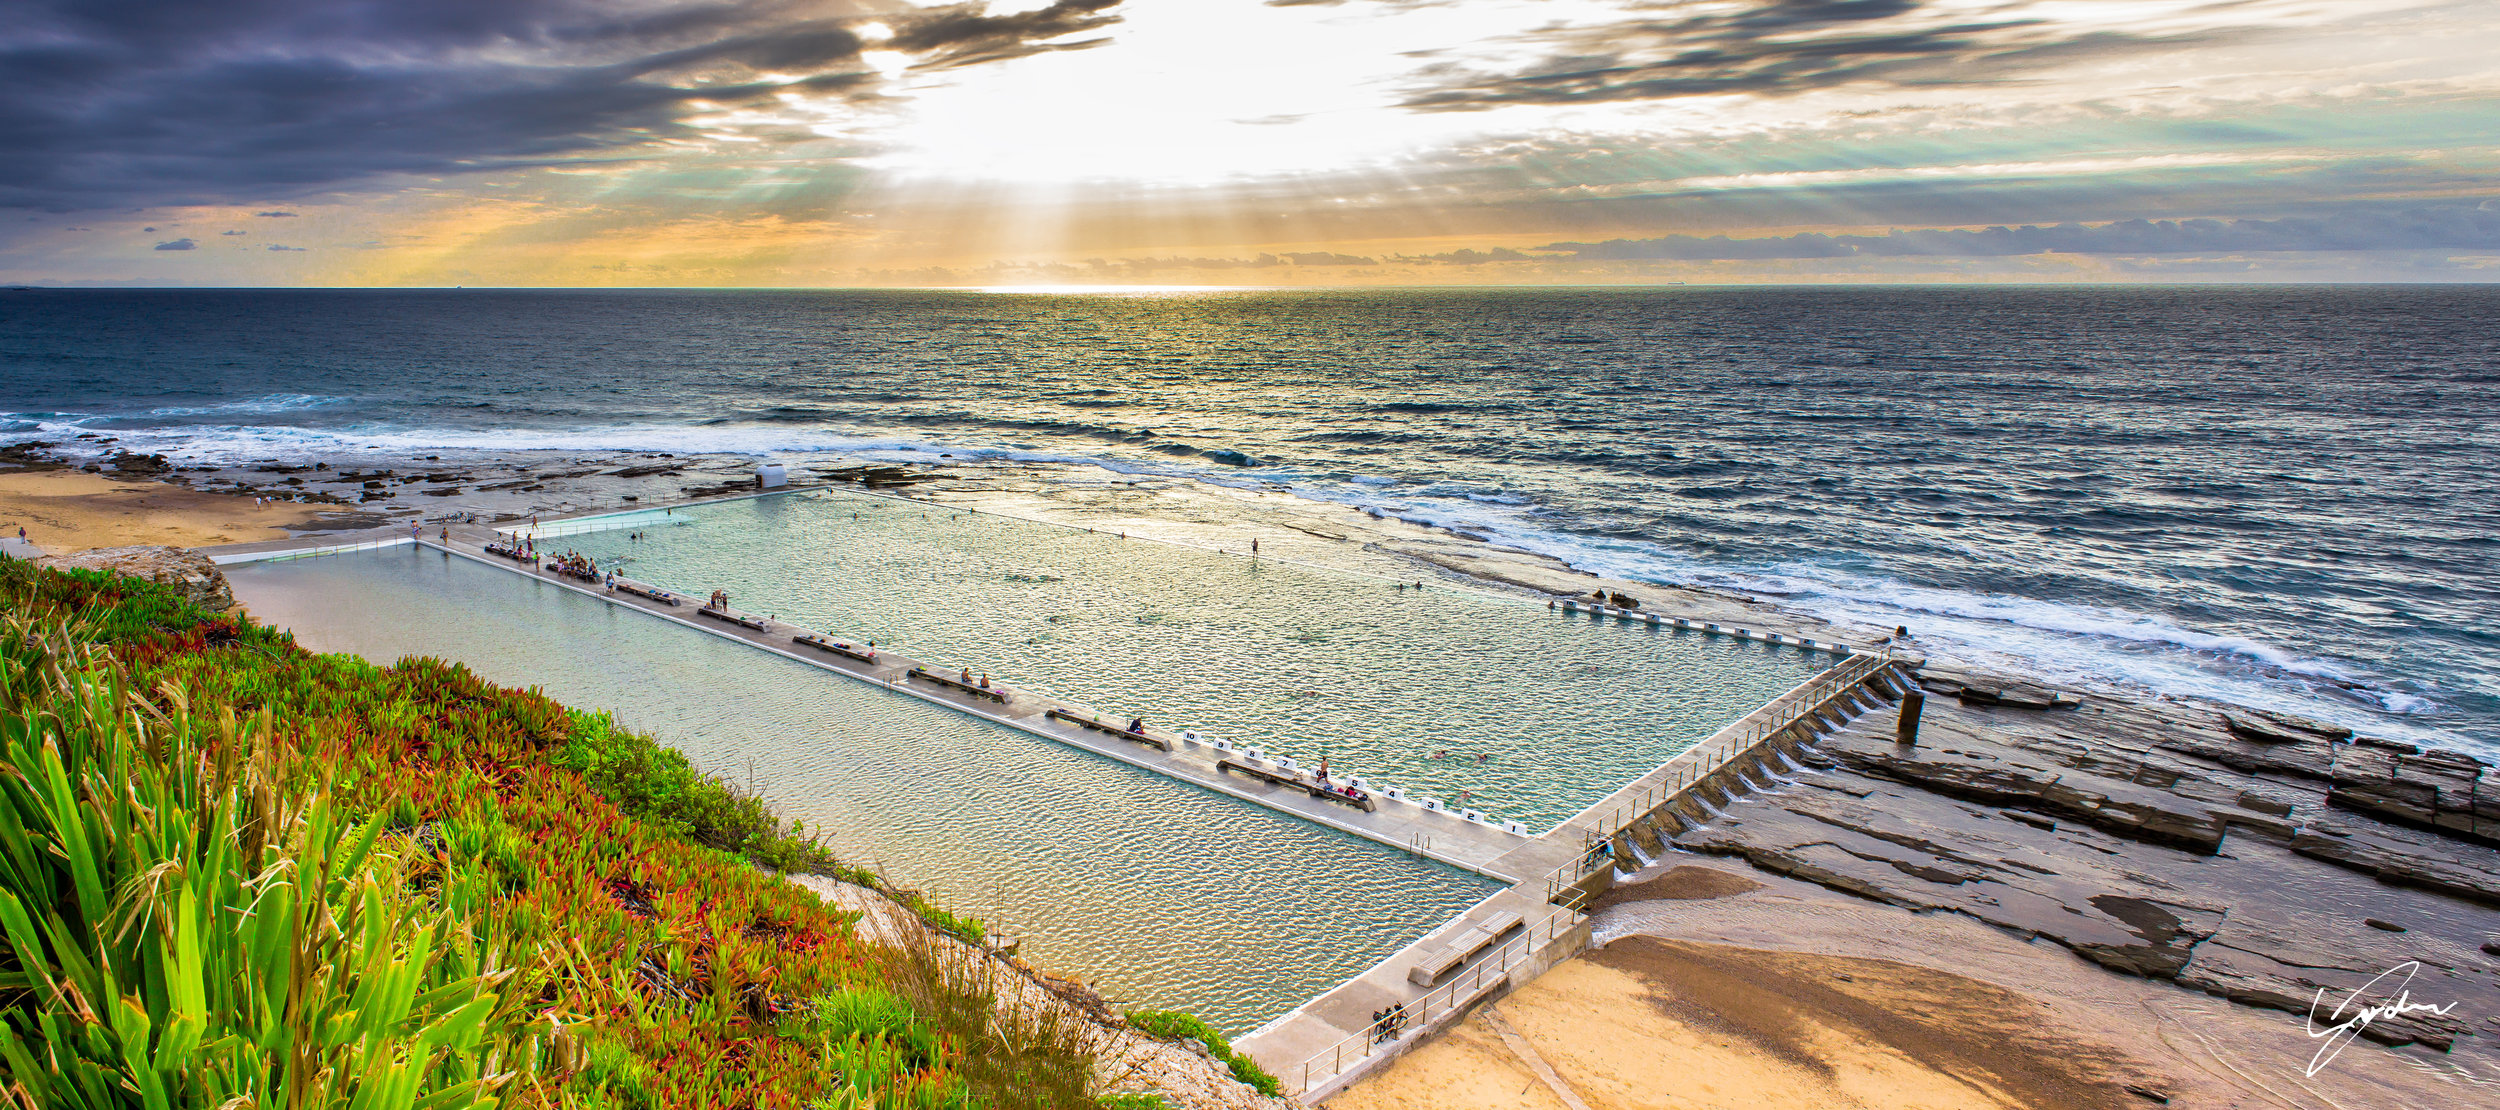 Merewether Baths Sunrise Australia Day